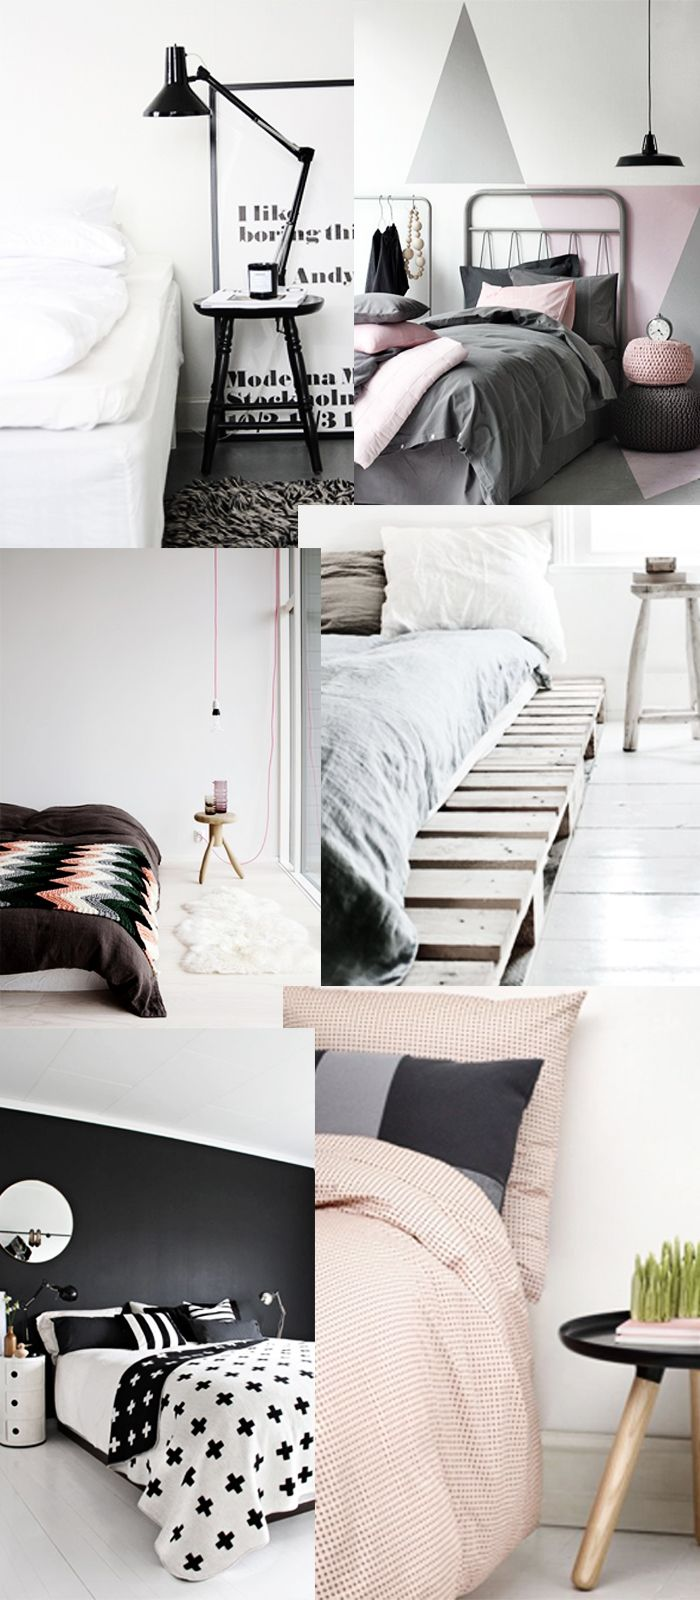 Sleeping room pink / grey